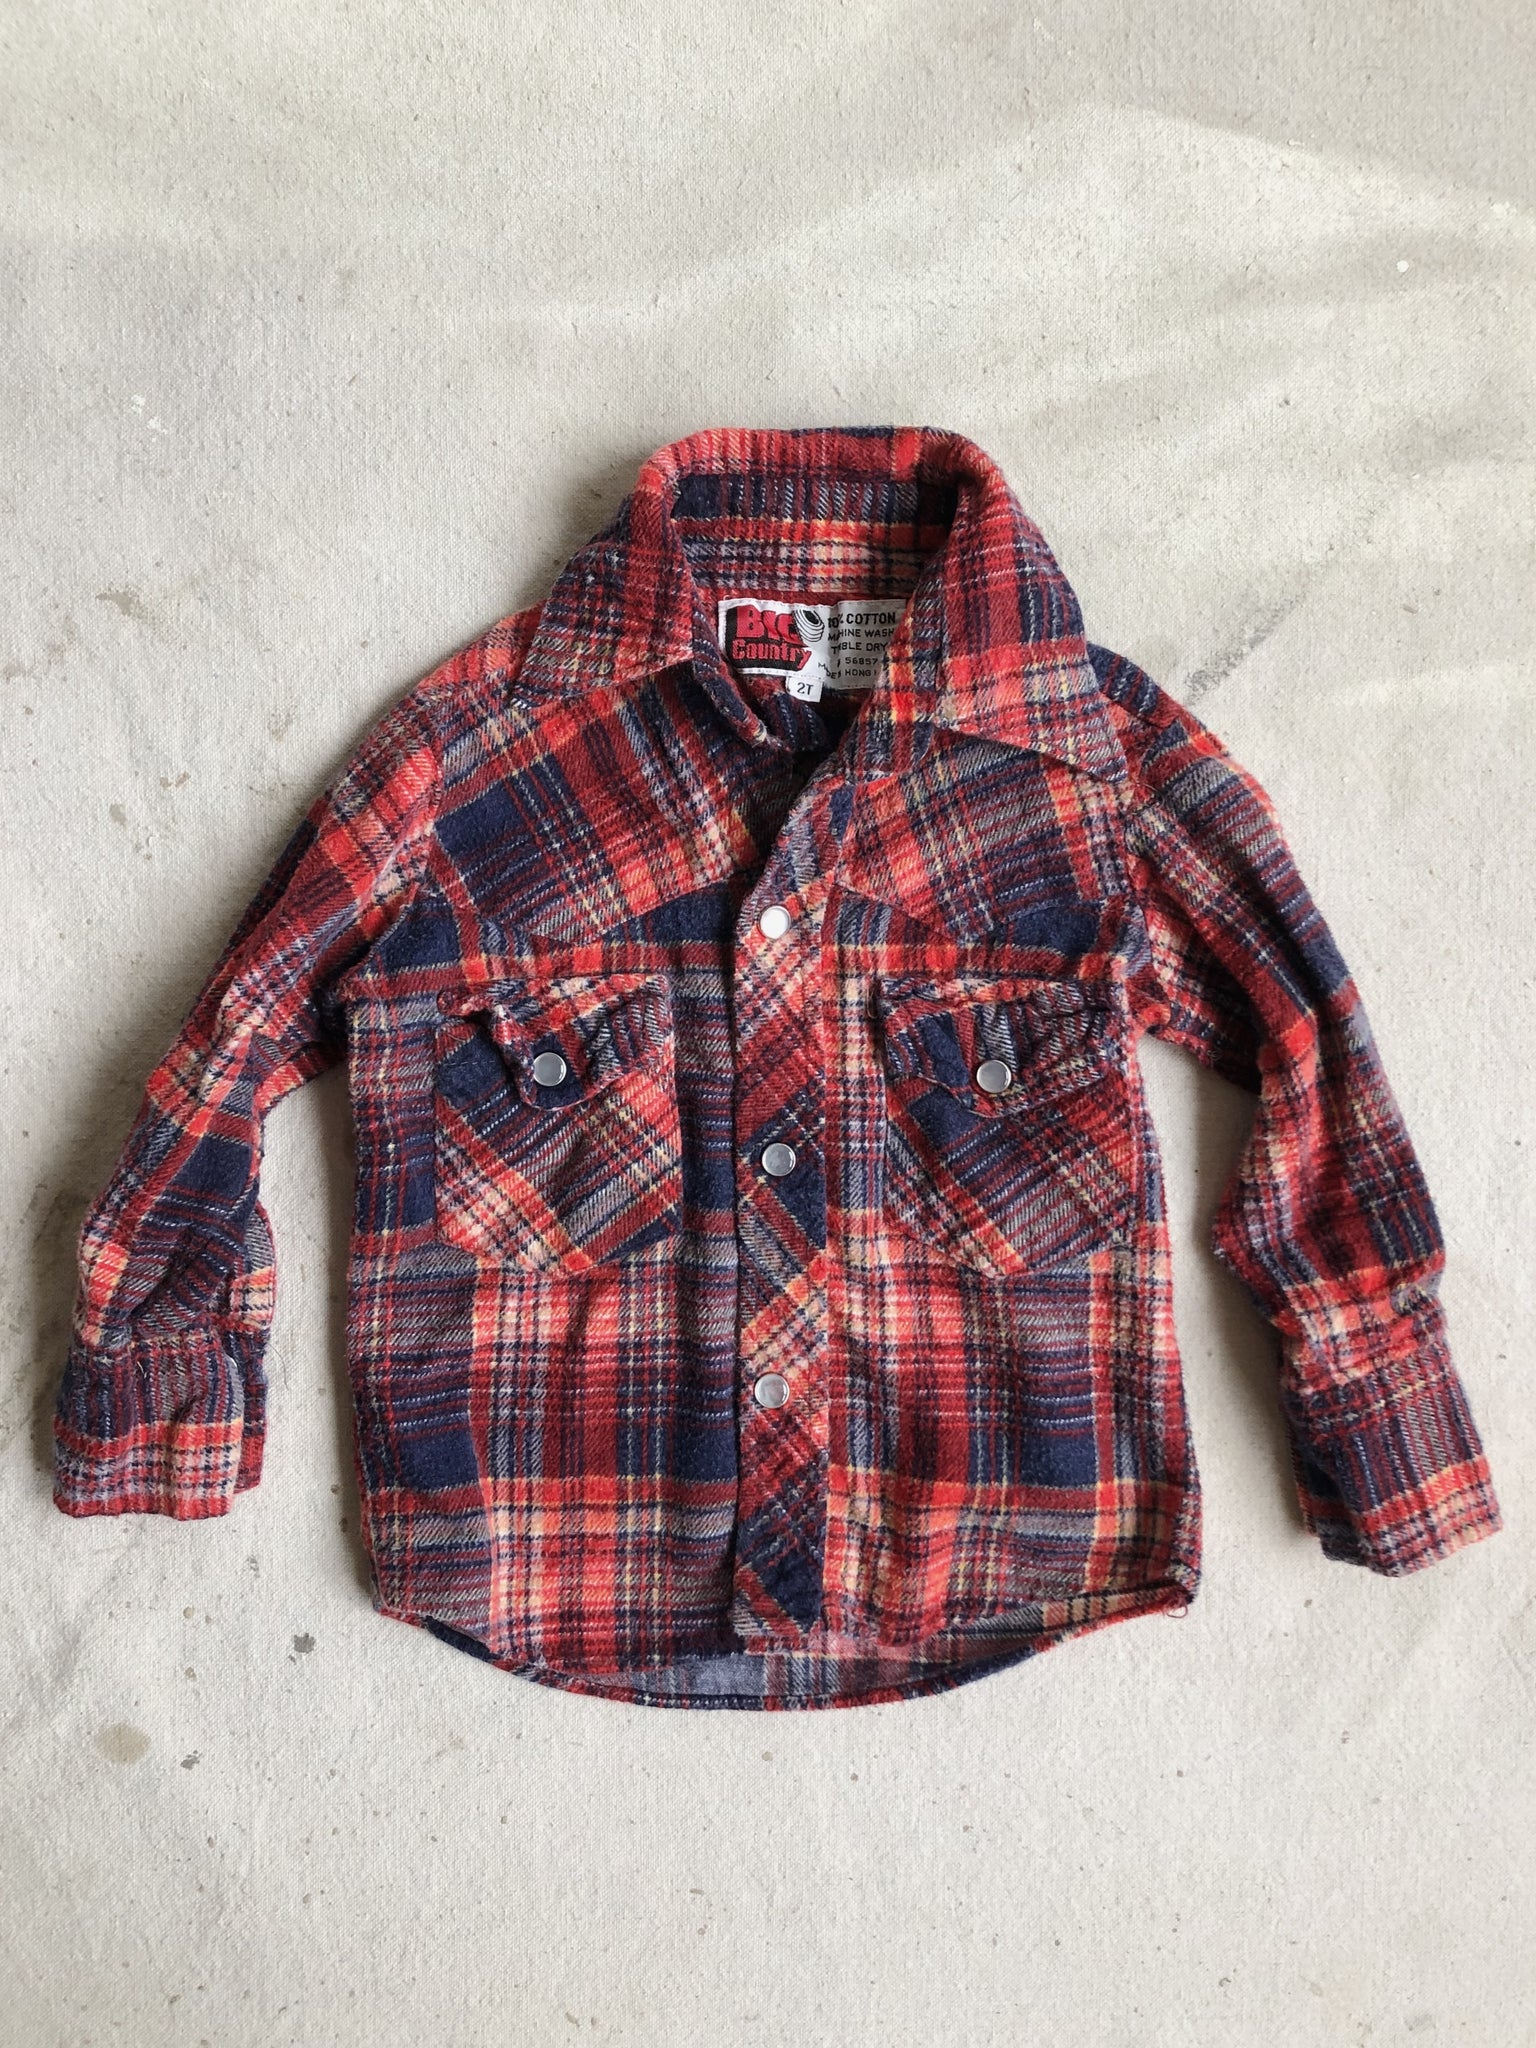 Big Country Flannel, 18m